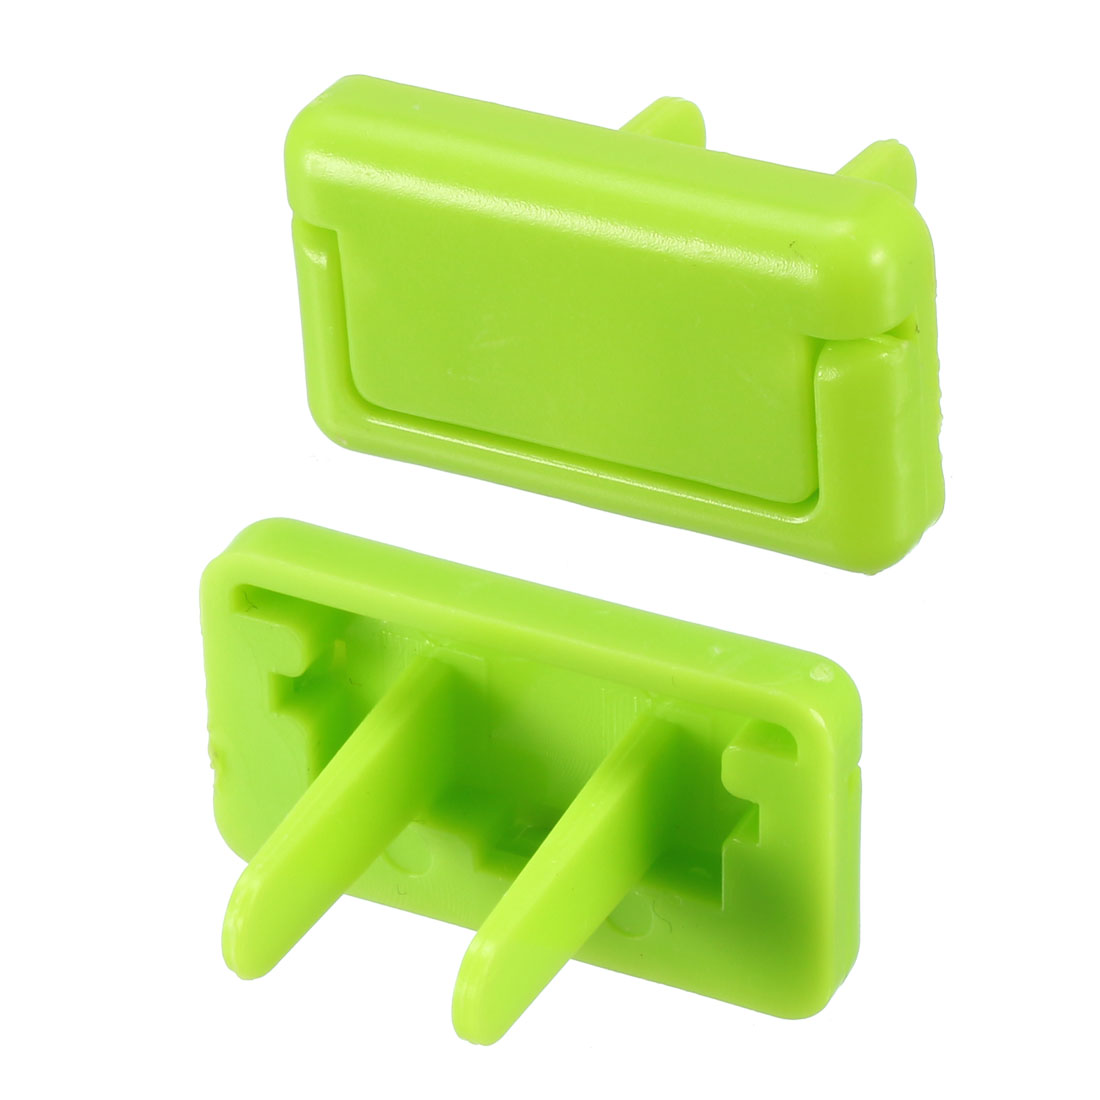 US Stand Power Socket Covers Durable Electrical Protector Cap Green 30 Pcs